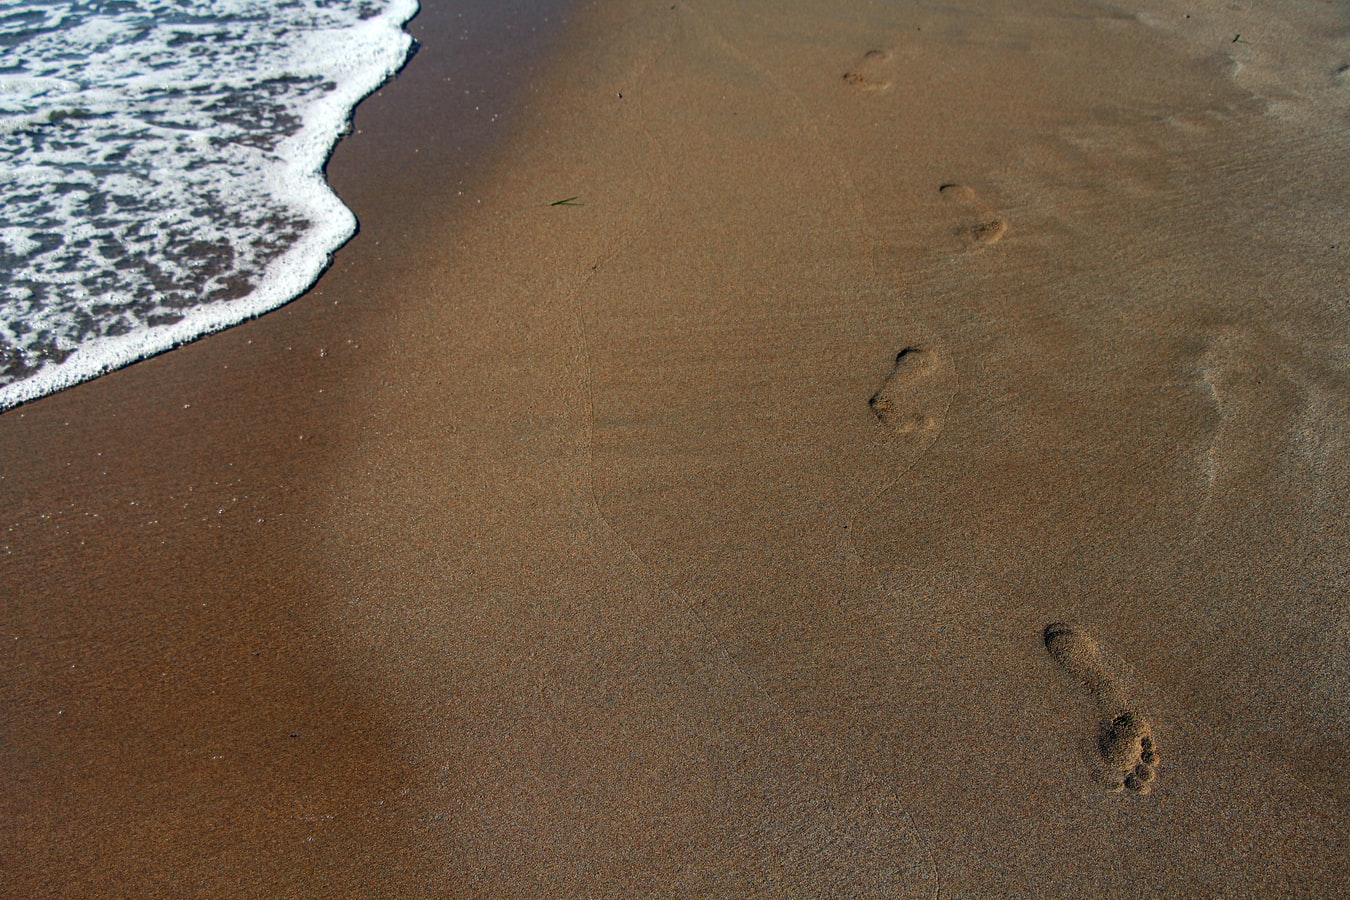 close up of footprints in the sand on a beach